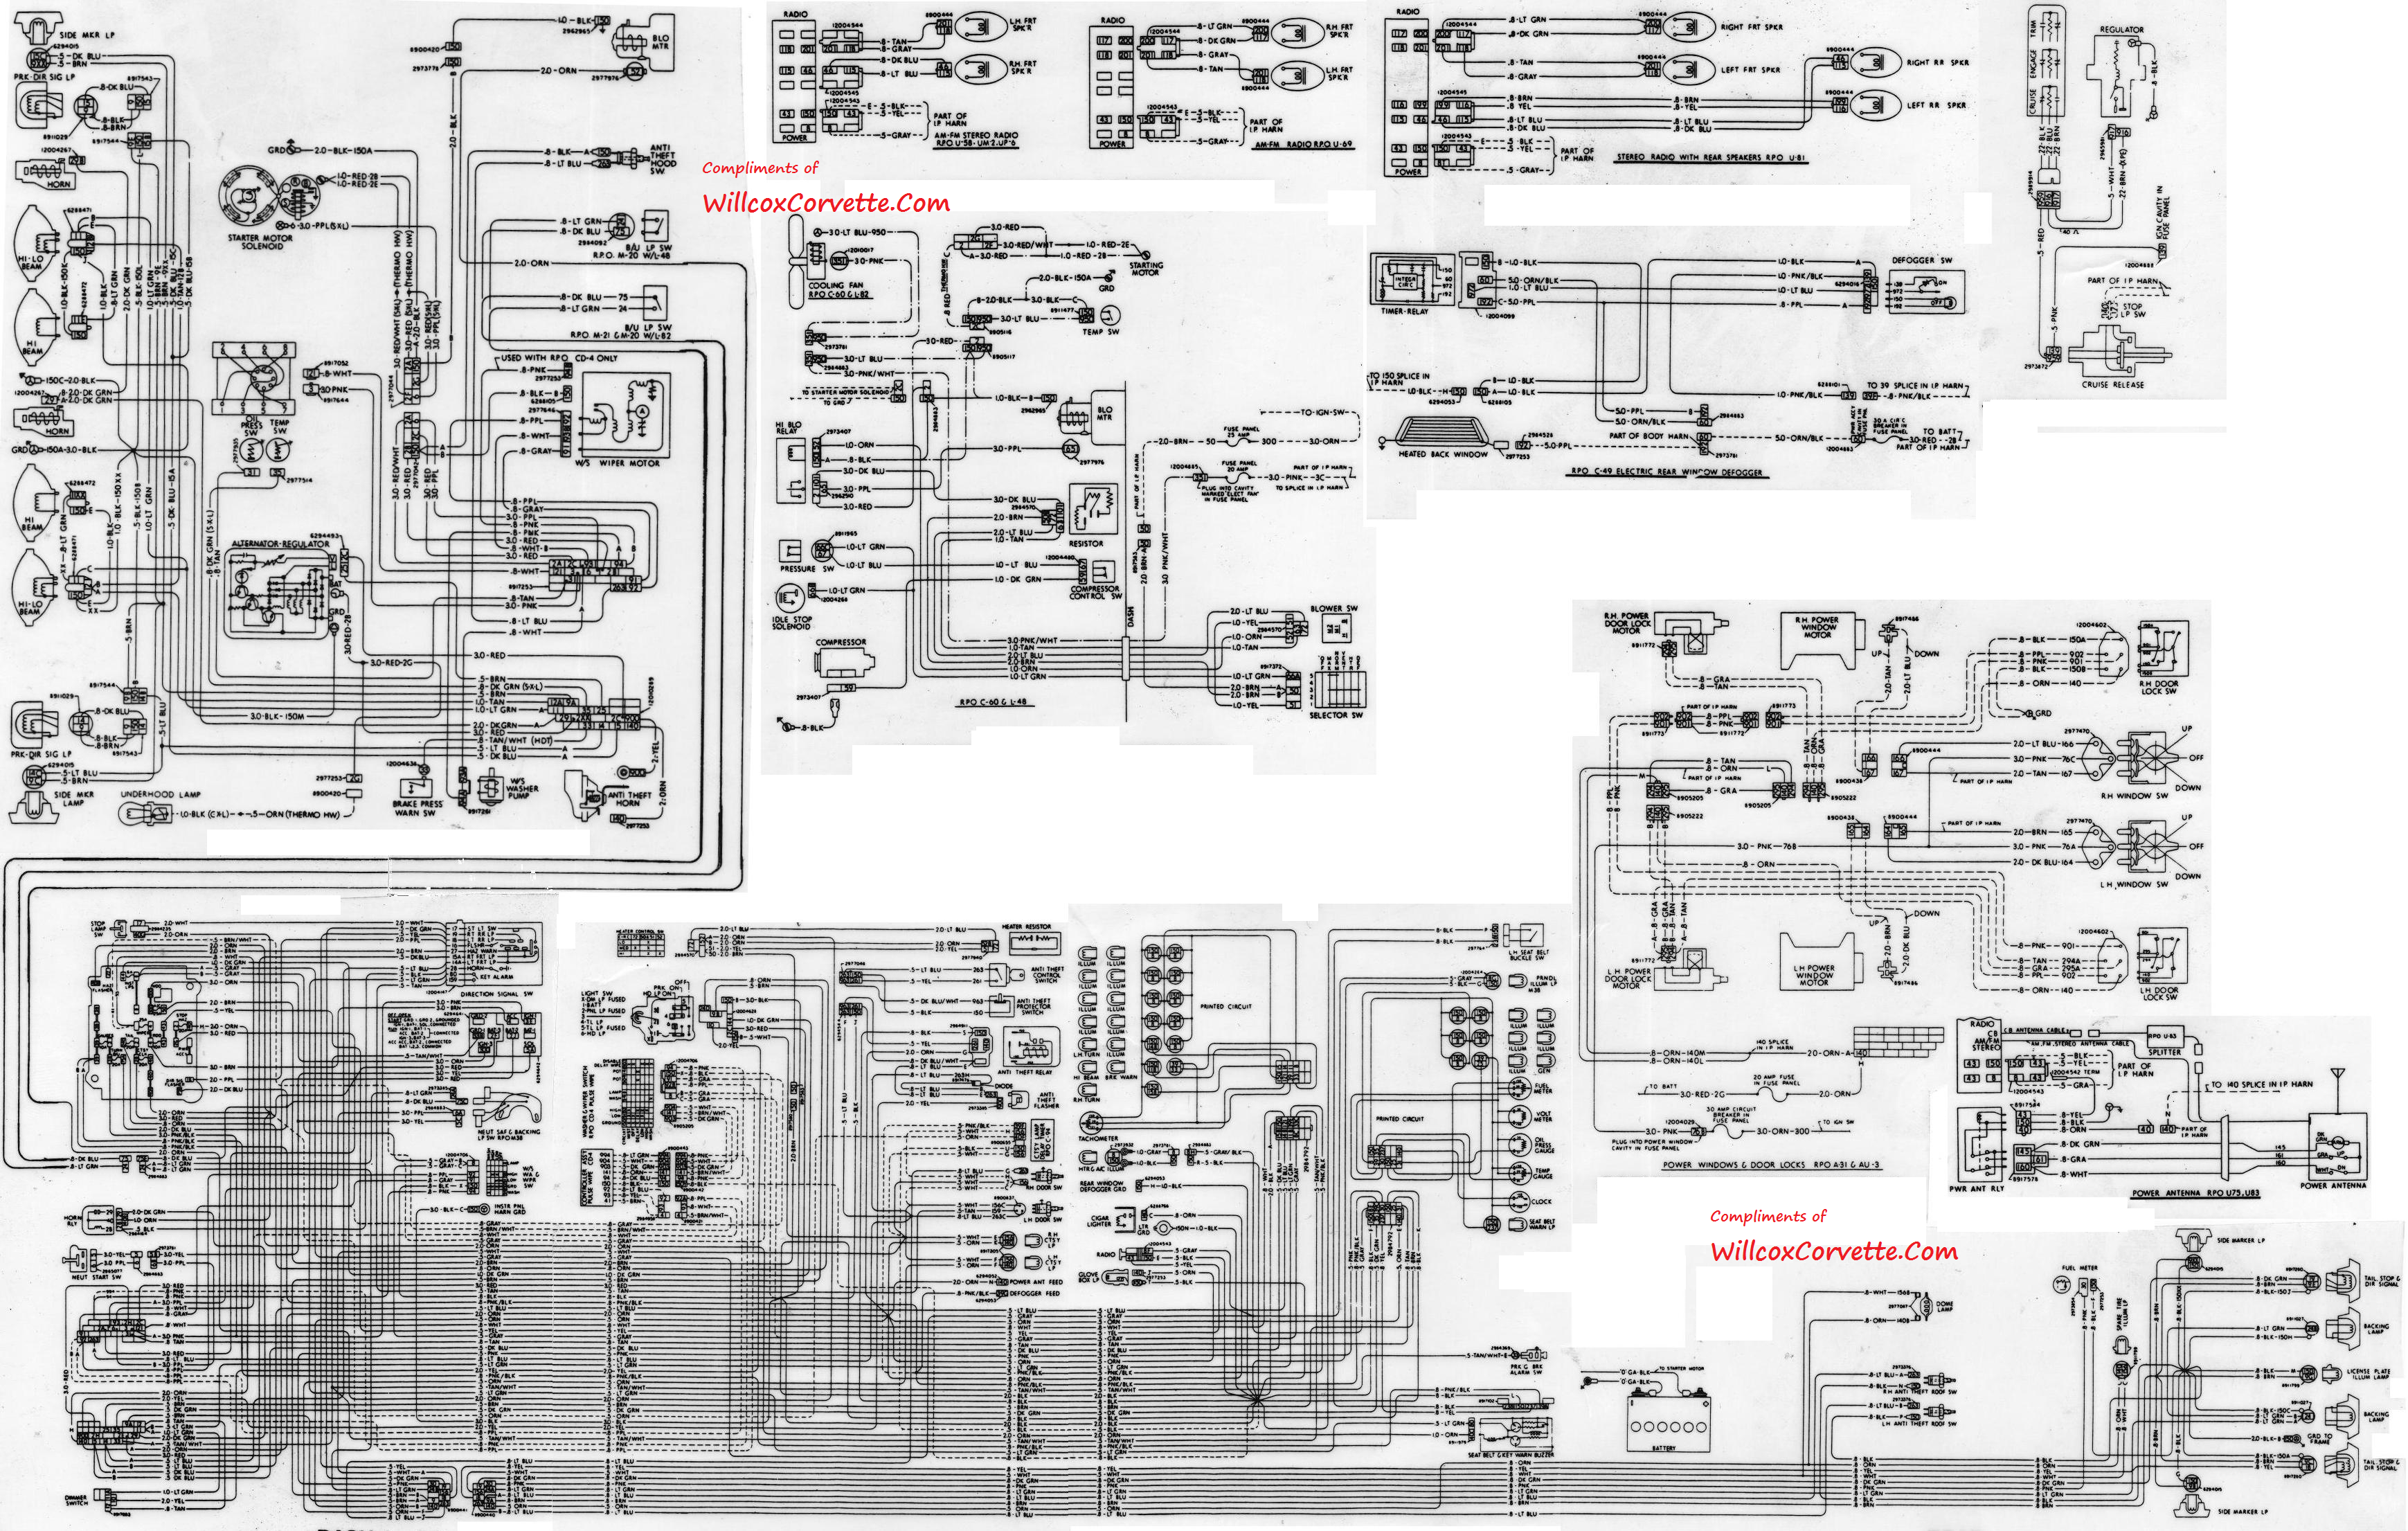 79 COMBINED TRACER SCHEMATIC 1979 wiring diagram corvetteforum chevrolet corvette forum 1980 corvette wiring diagram at mifinder.co